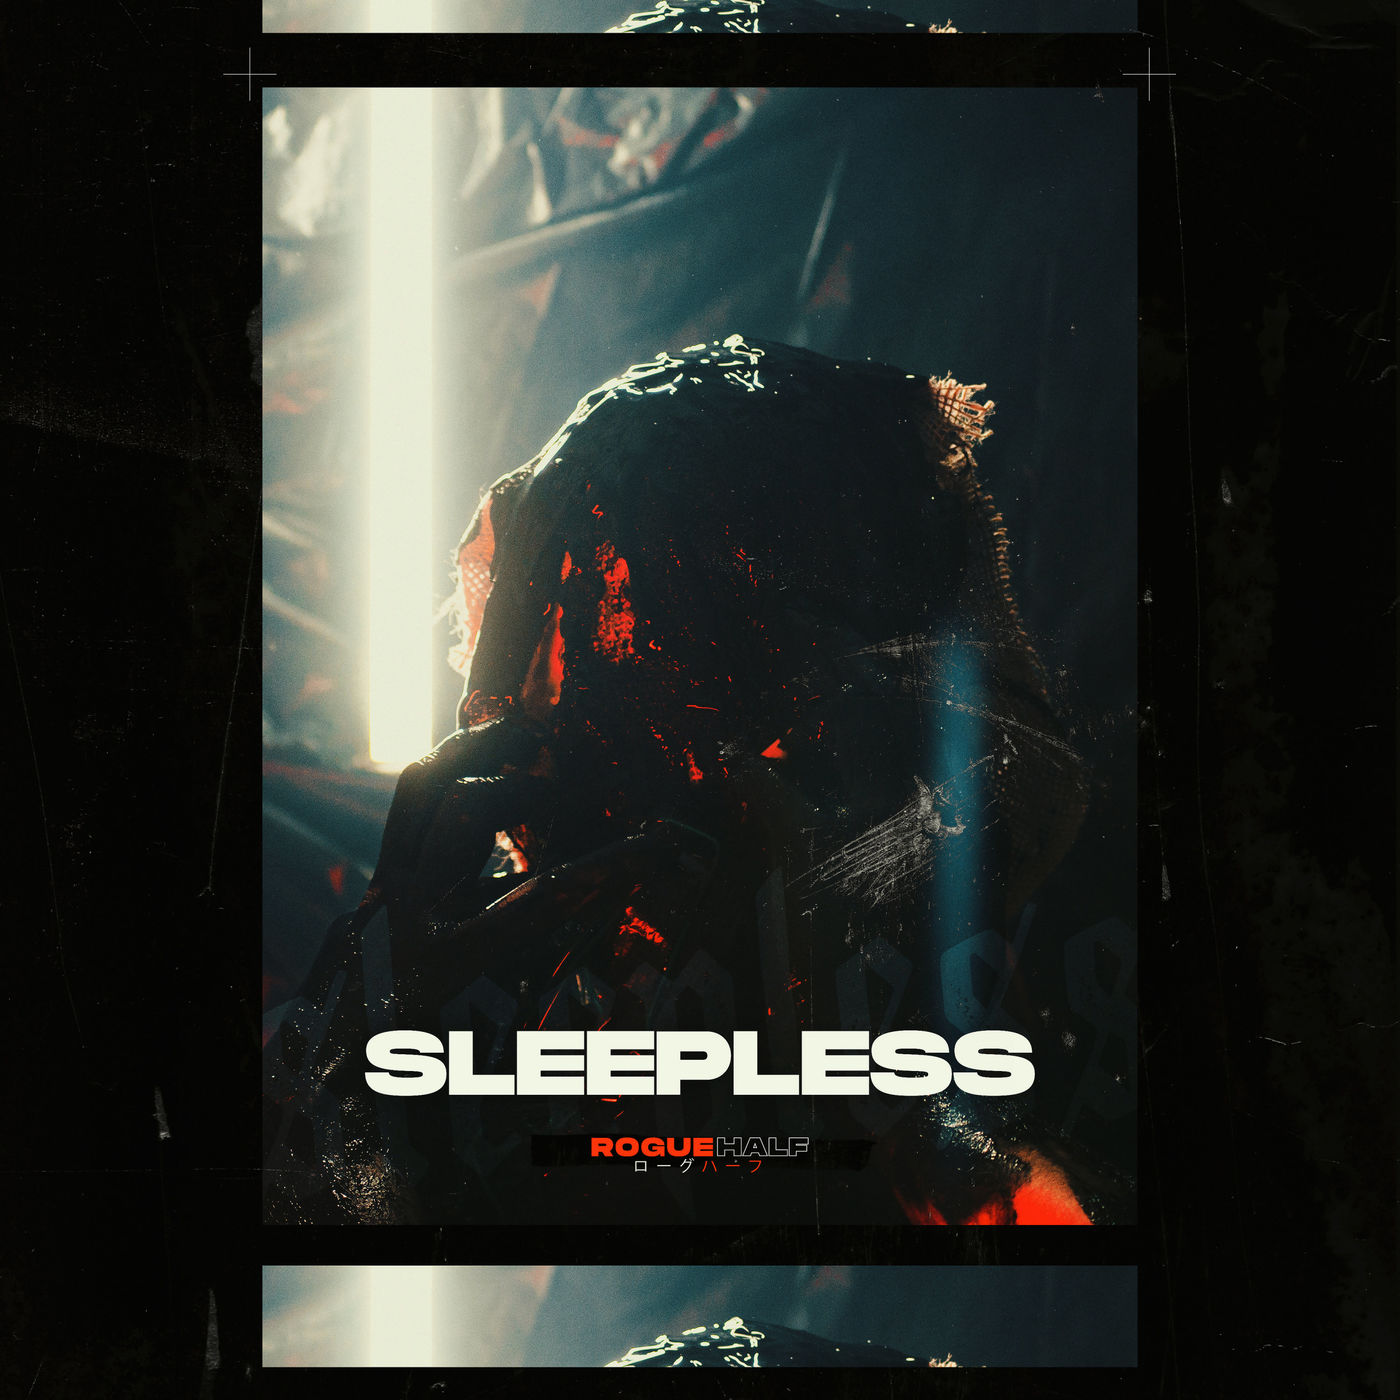 Rogue Half - Sleepless [single] (2019)